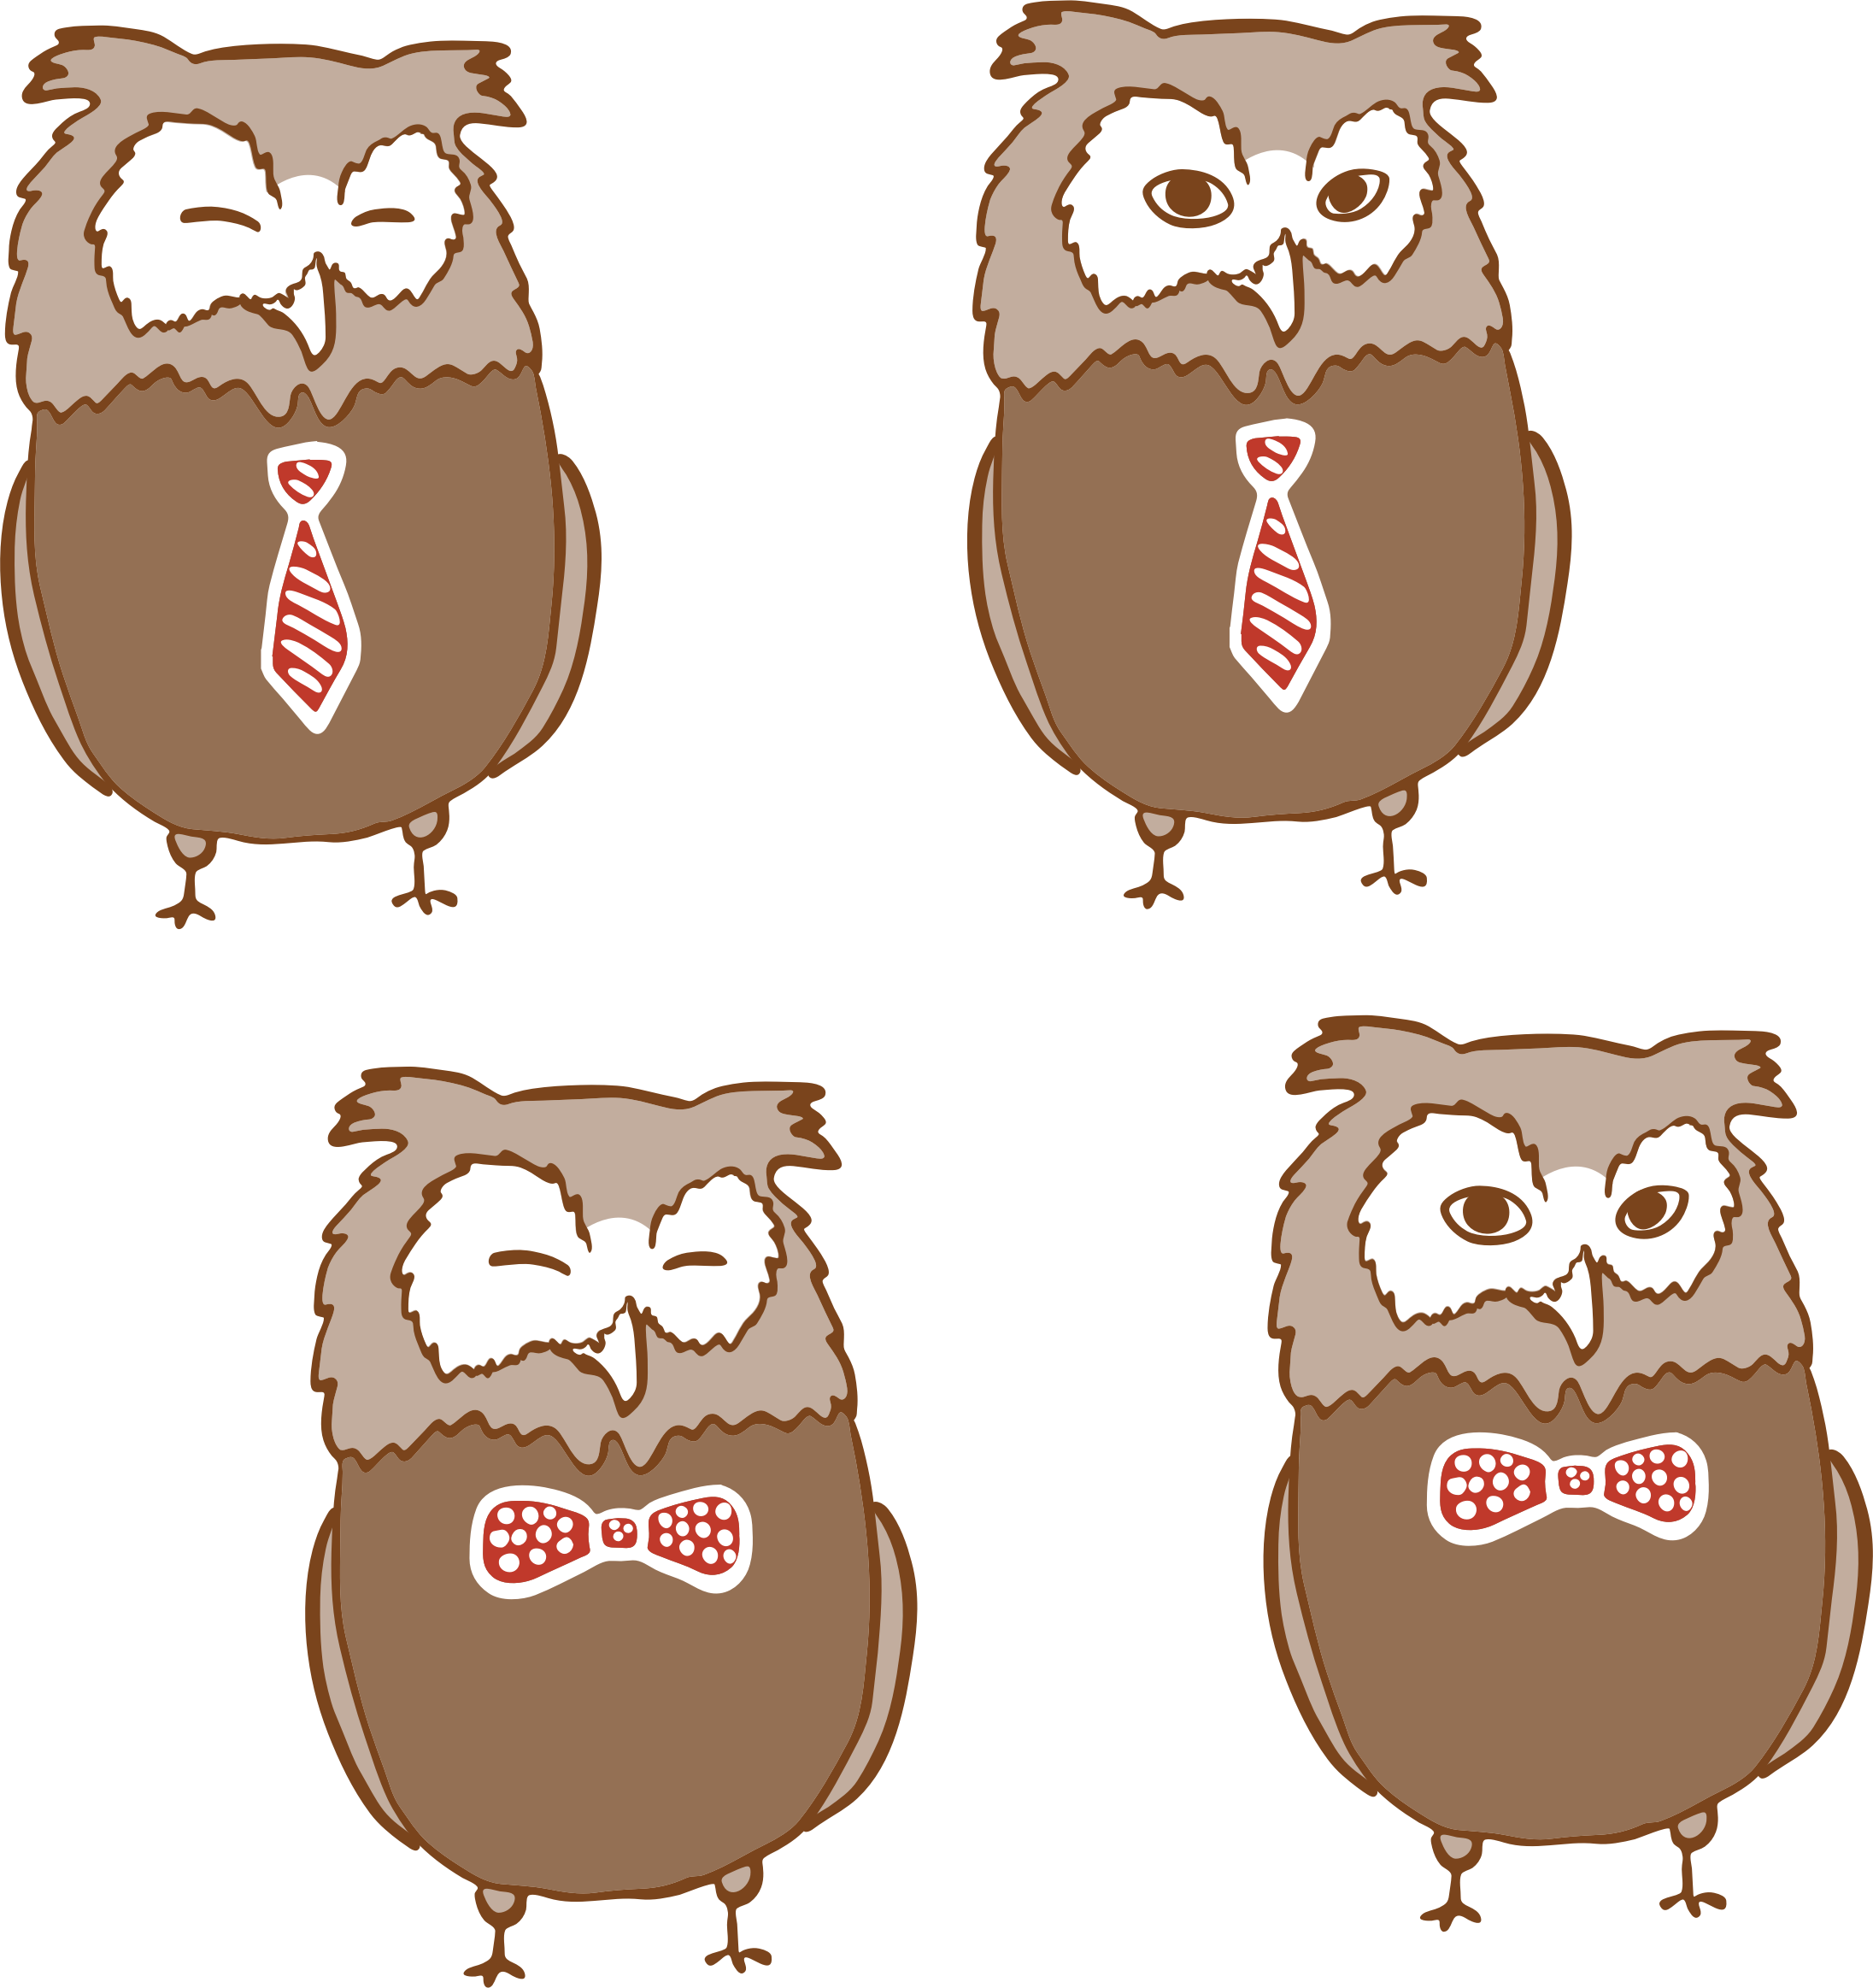 Anthropomorphic Owls 4 by GDJ